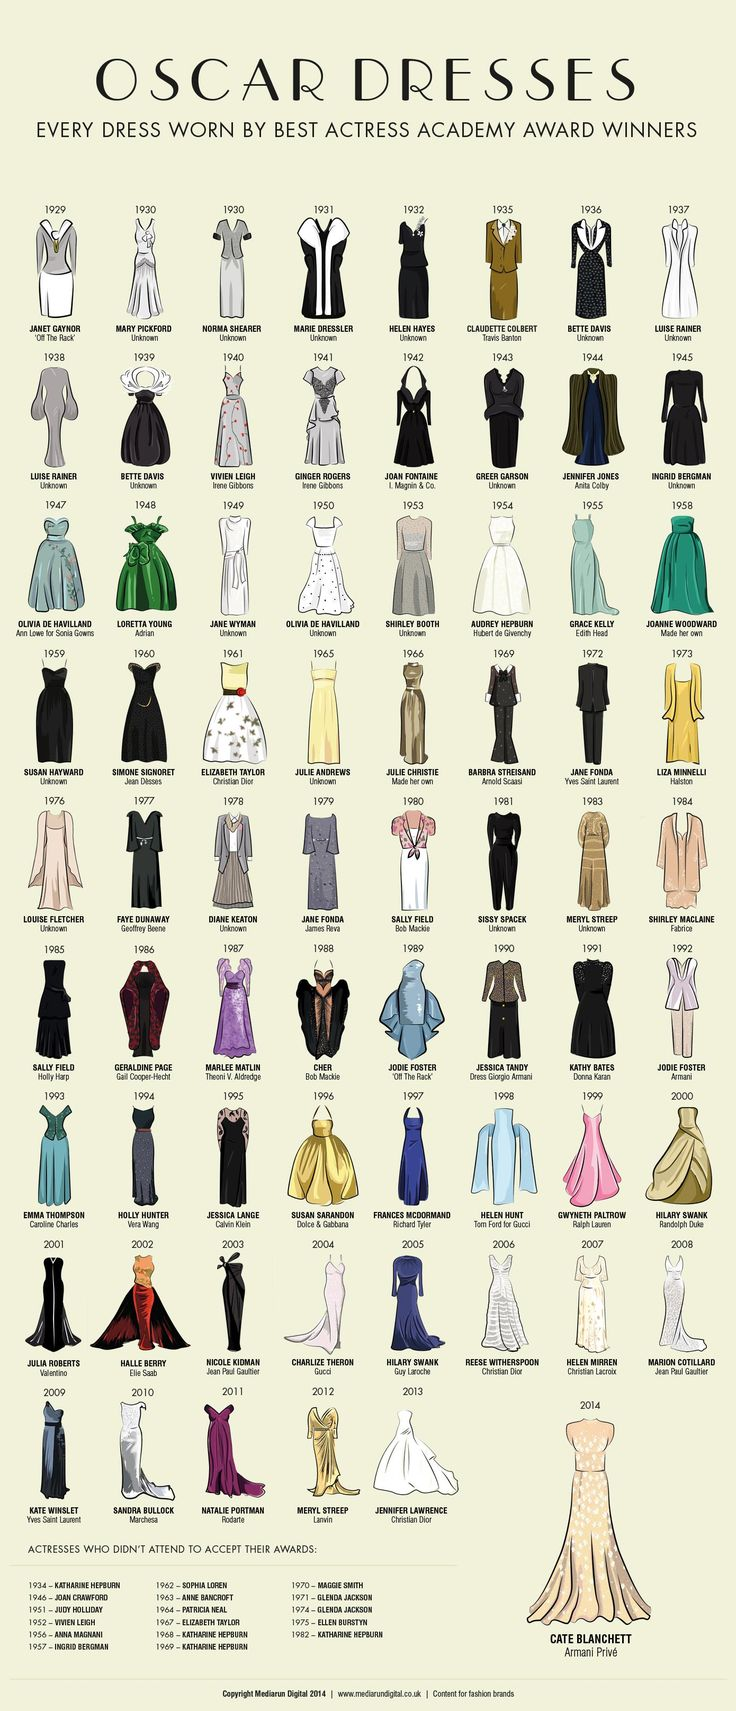 Best-Actress-Oscar-Dresses-1929-to-2014 VISIT GLAMOURDAZE.COM for full story